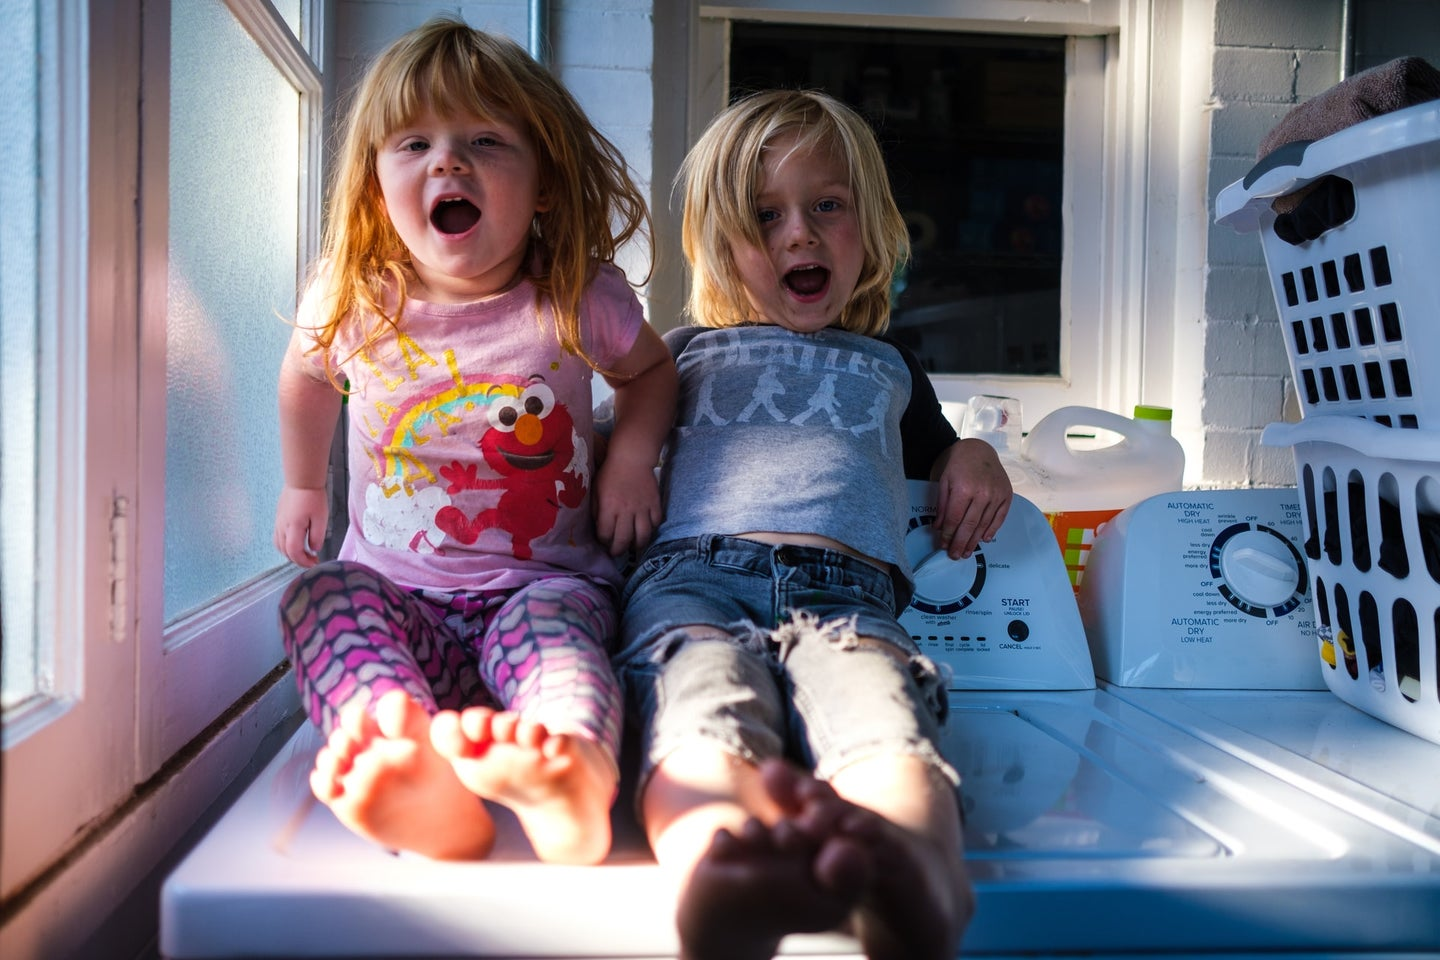 Two kids with blond and red hair sitting on a washer in a laundry room